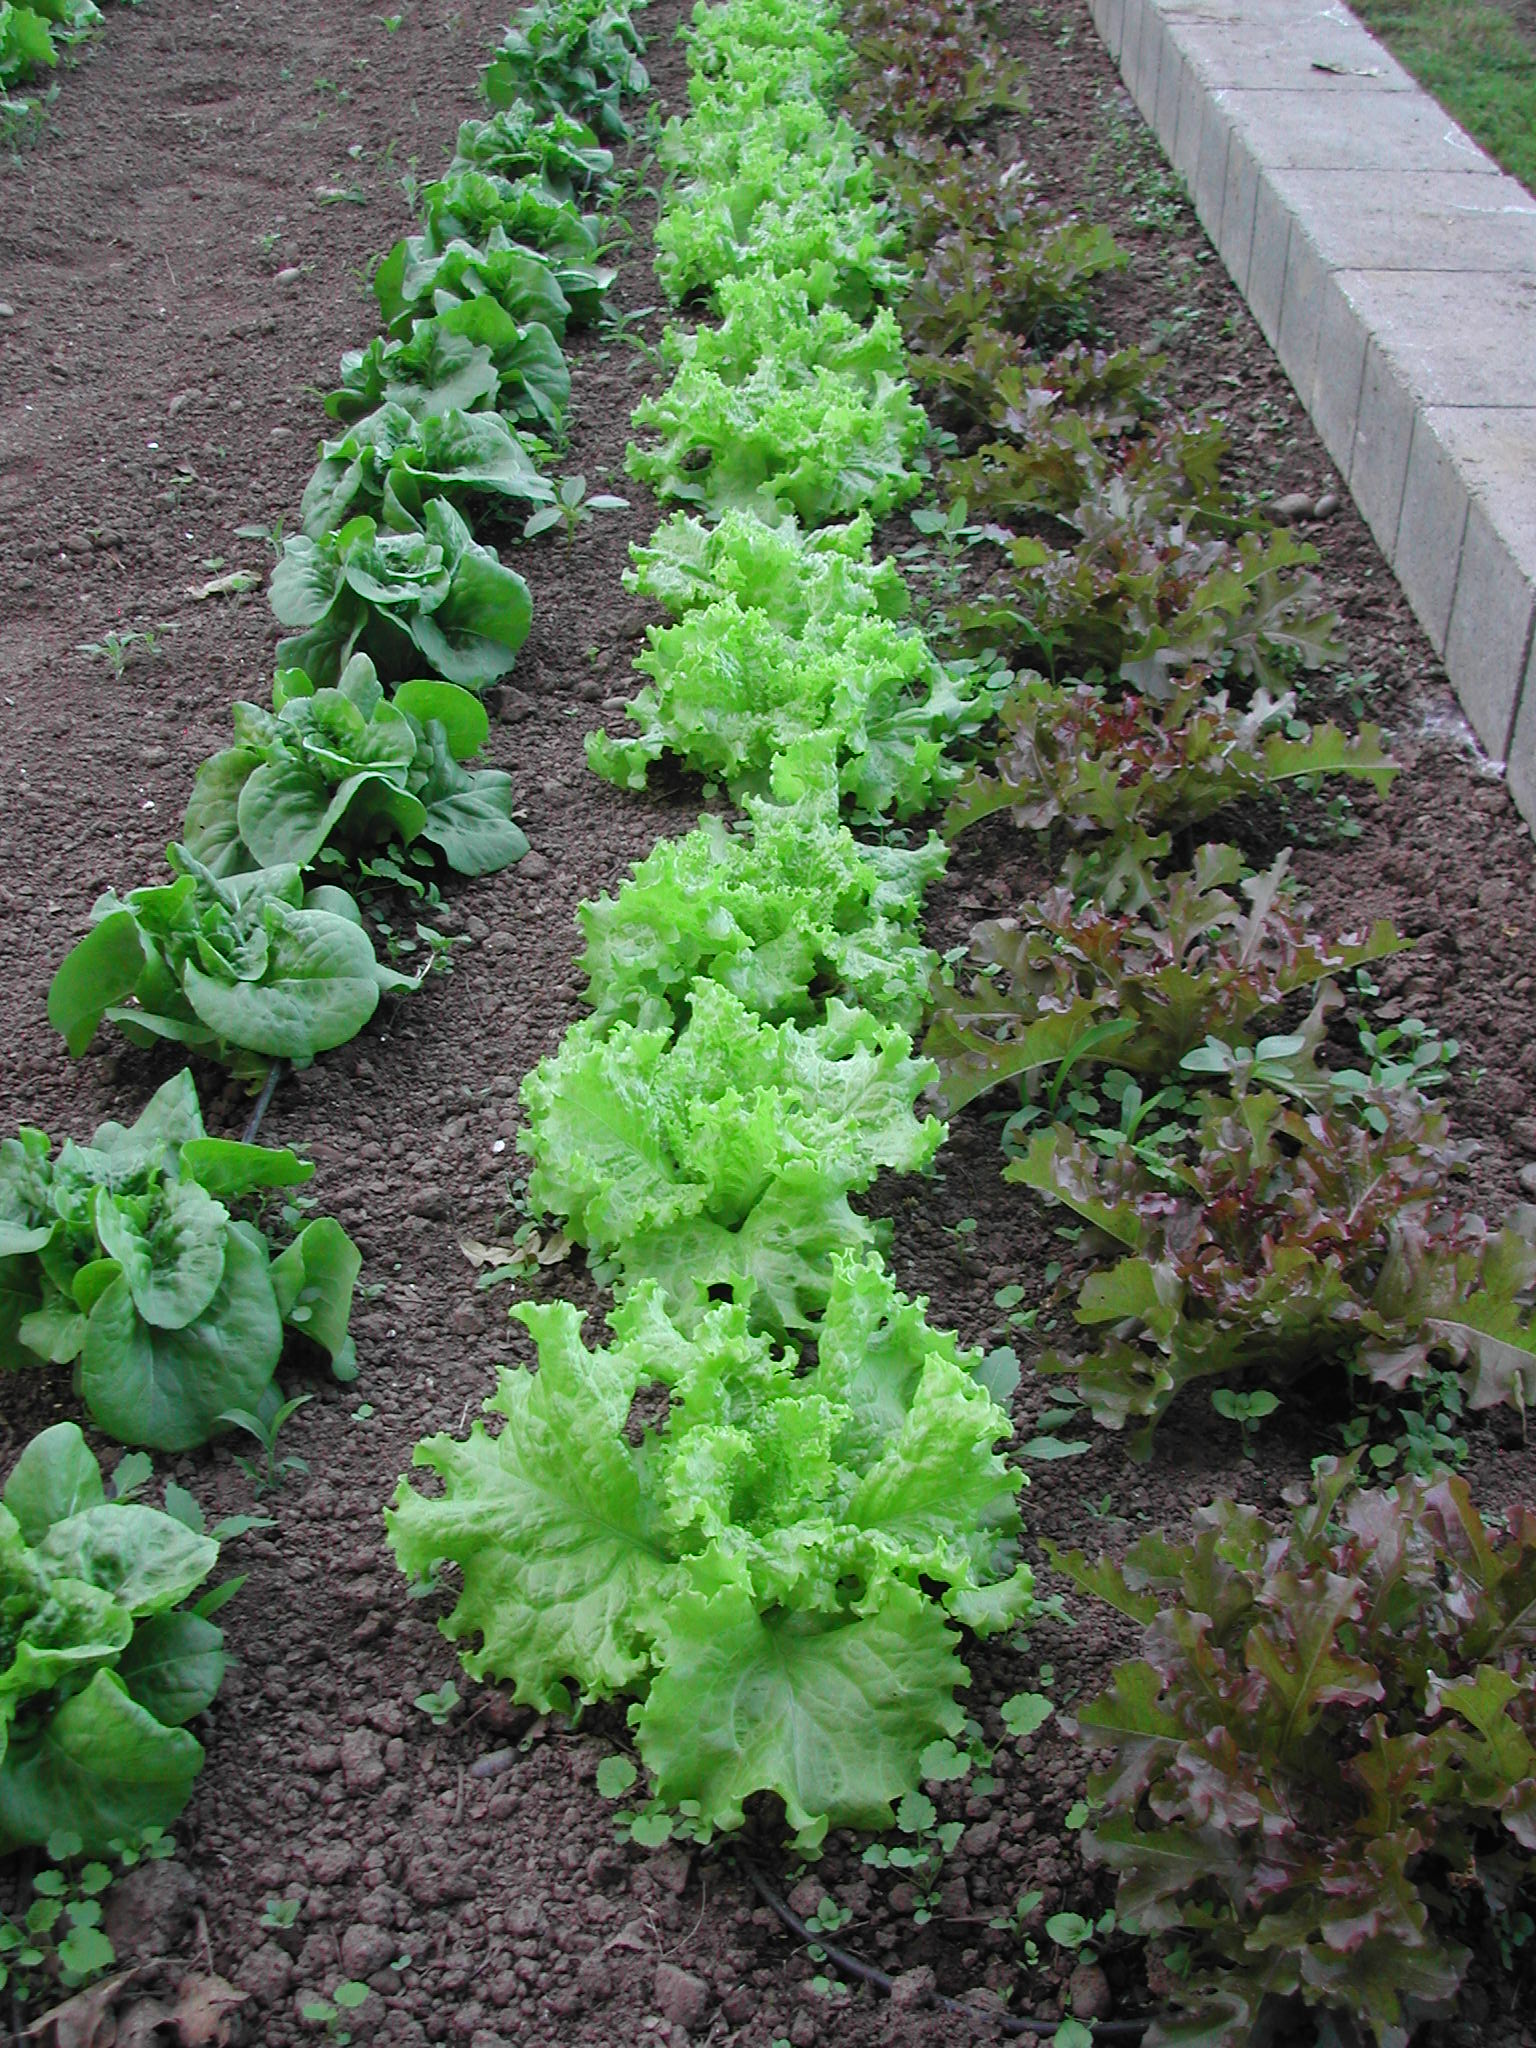 The next batch of lettuce, coming soon.